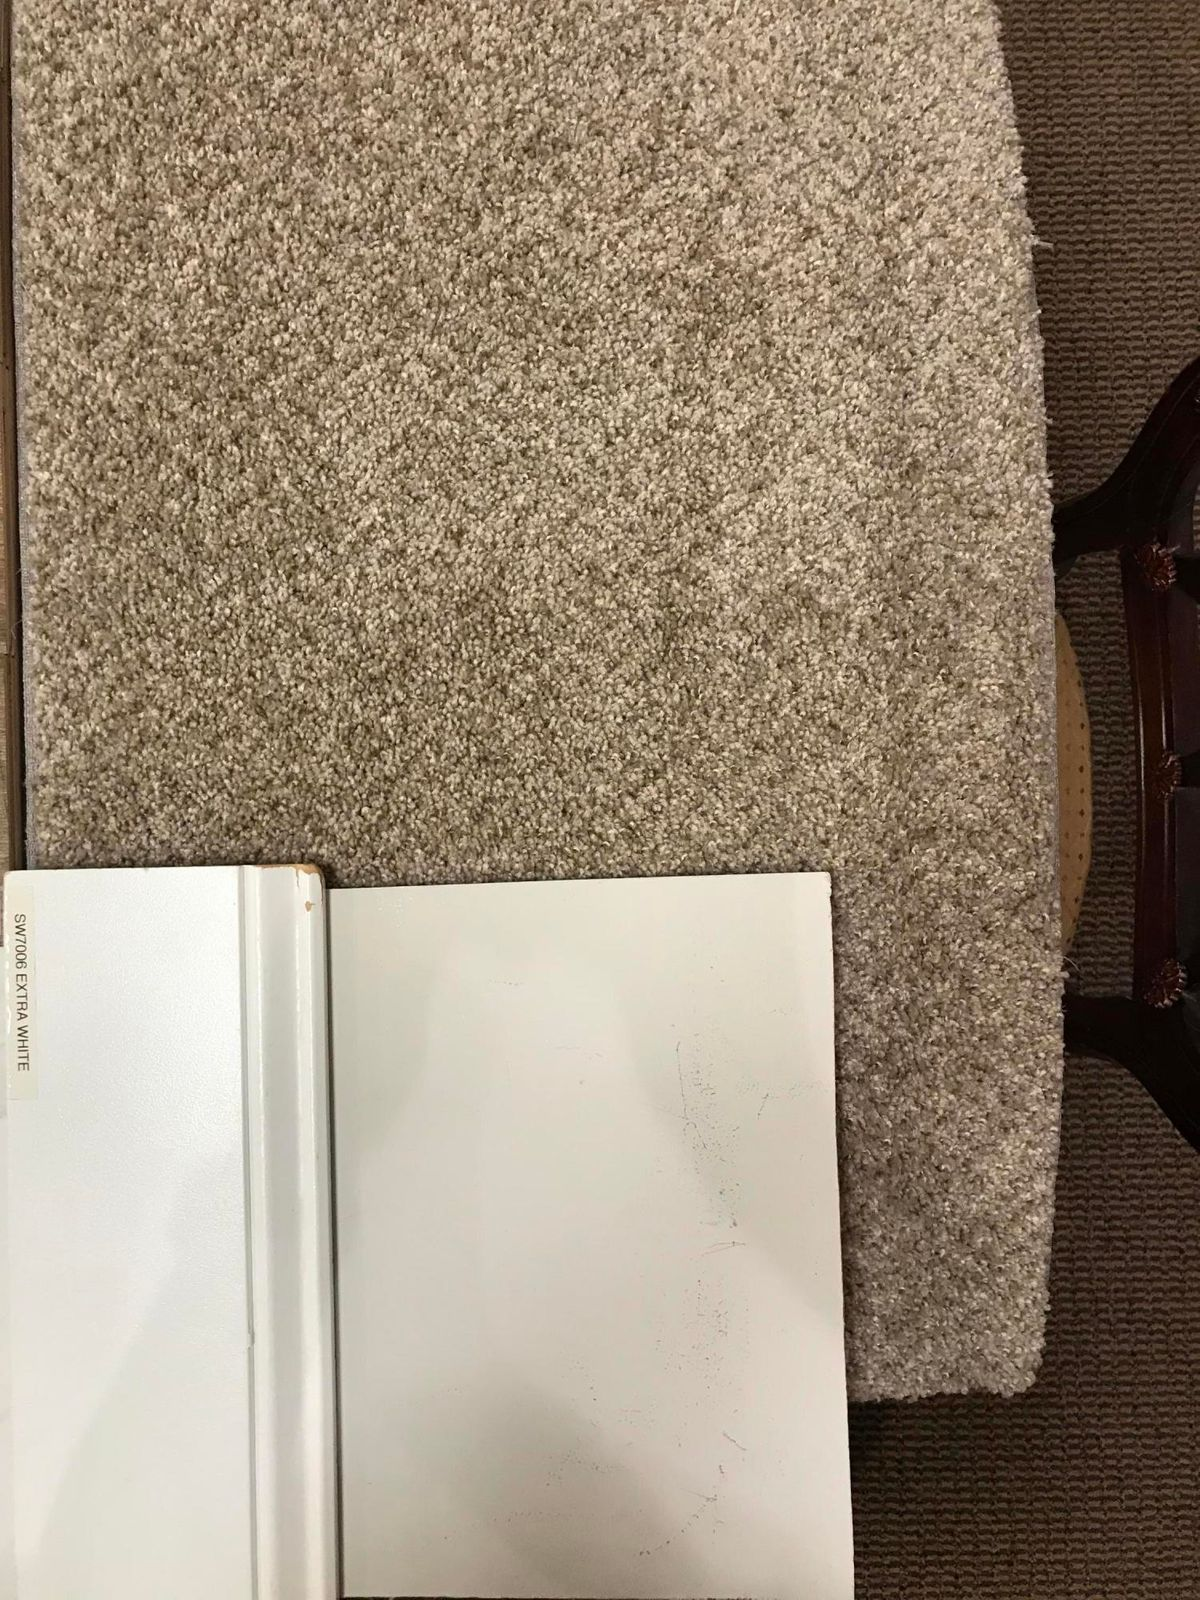 VIN178 Carpet, Wall and trim colors